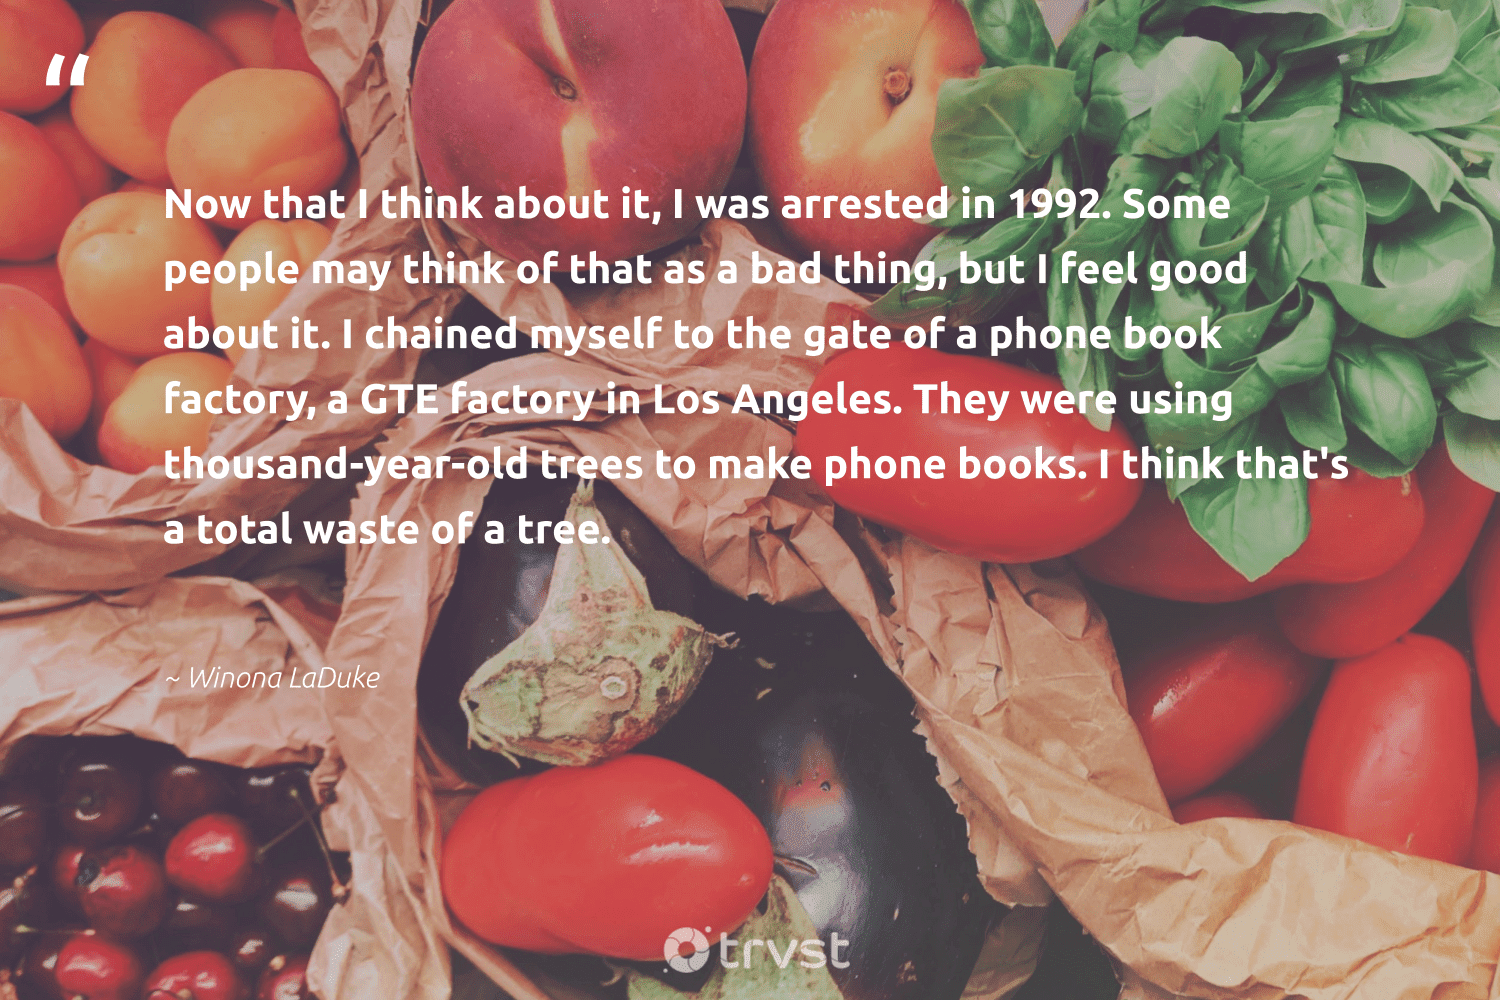 """""""Now that I think about it, I was arrested in 1992. Some people may think of that as a bad thing, but I feel good about it. I chained myself to the gate of a phone book factory, a GTE factory in Los Angeles. They were using thousand-year-old trees to make phone books. I think that's a total waste of a tree.""""  - Winona LaDuke #trvst #quotes #waste #trees #rainforest #dosomething #environmentallyfriendly #thinkgreen #forest #waronwaste #noplanetb #socialchange"""